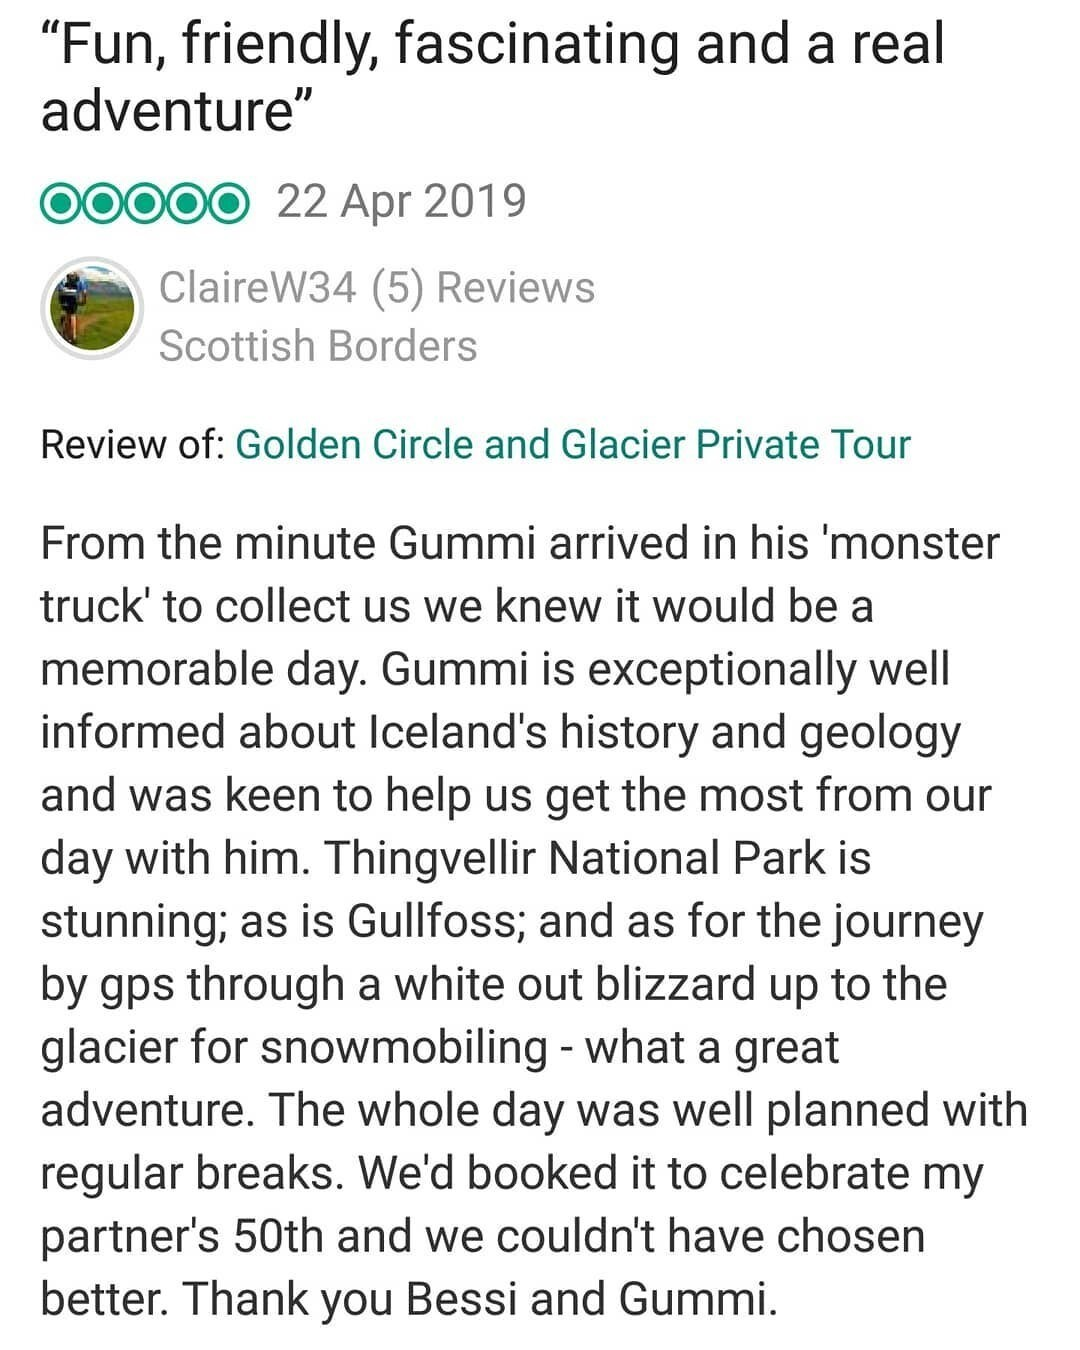 Tripadvisor review for Moonwalker tours in Iceland.